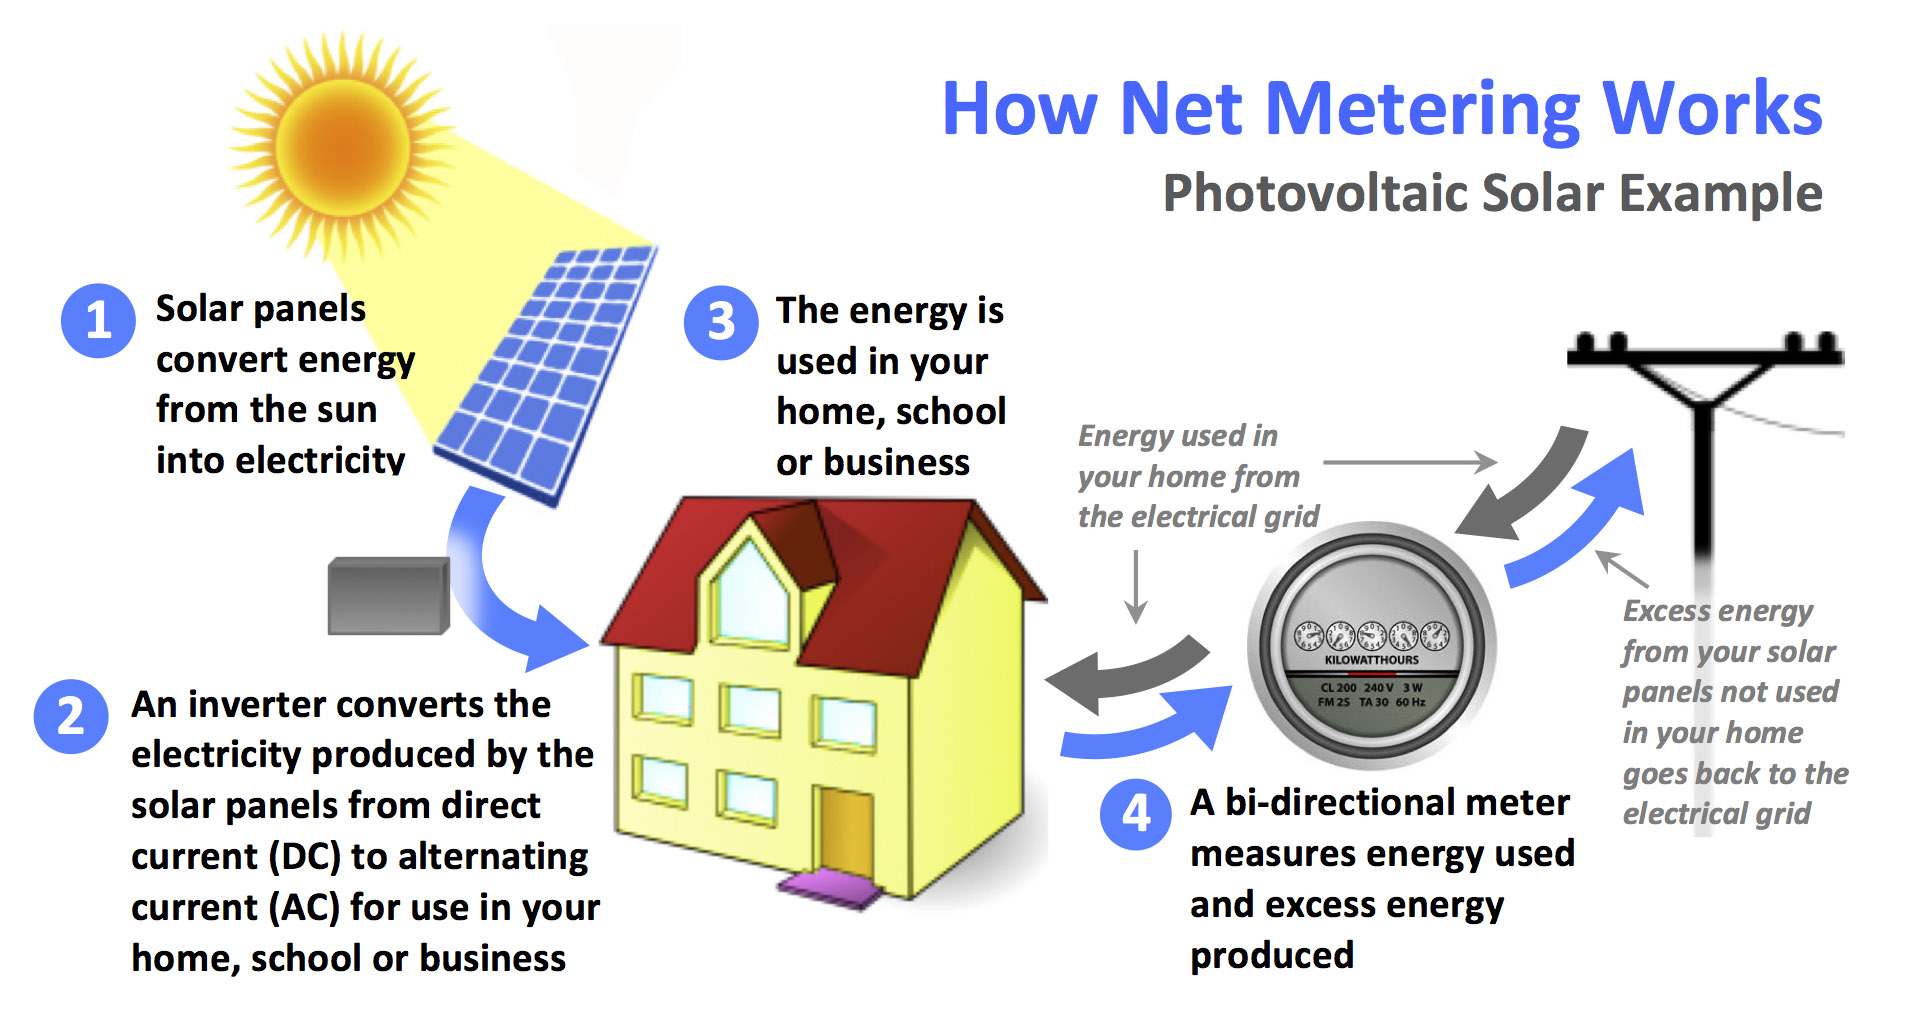 piment rouge lighting - net metering feature in piment rouge solar power system 3